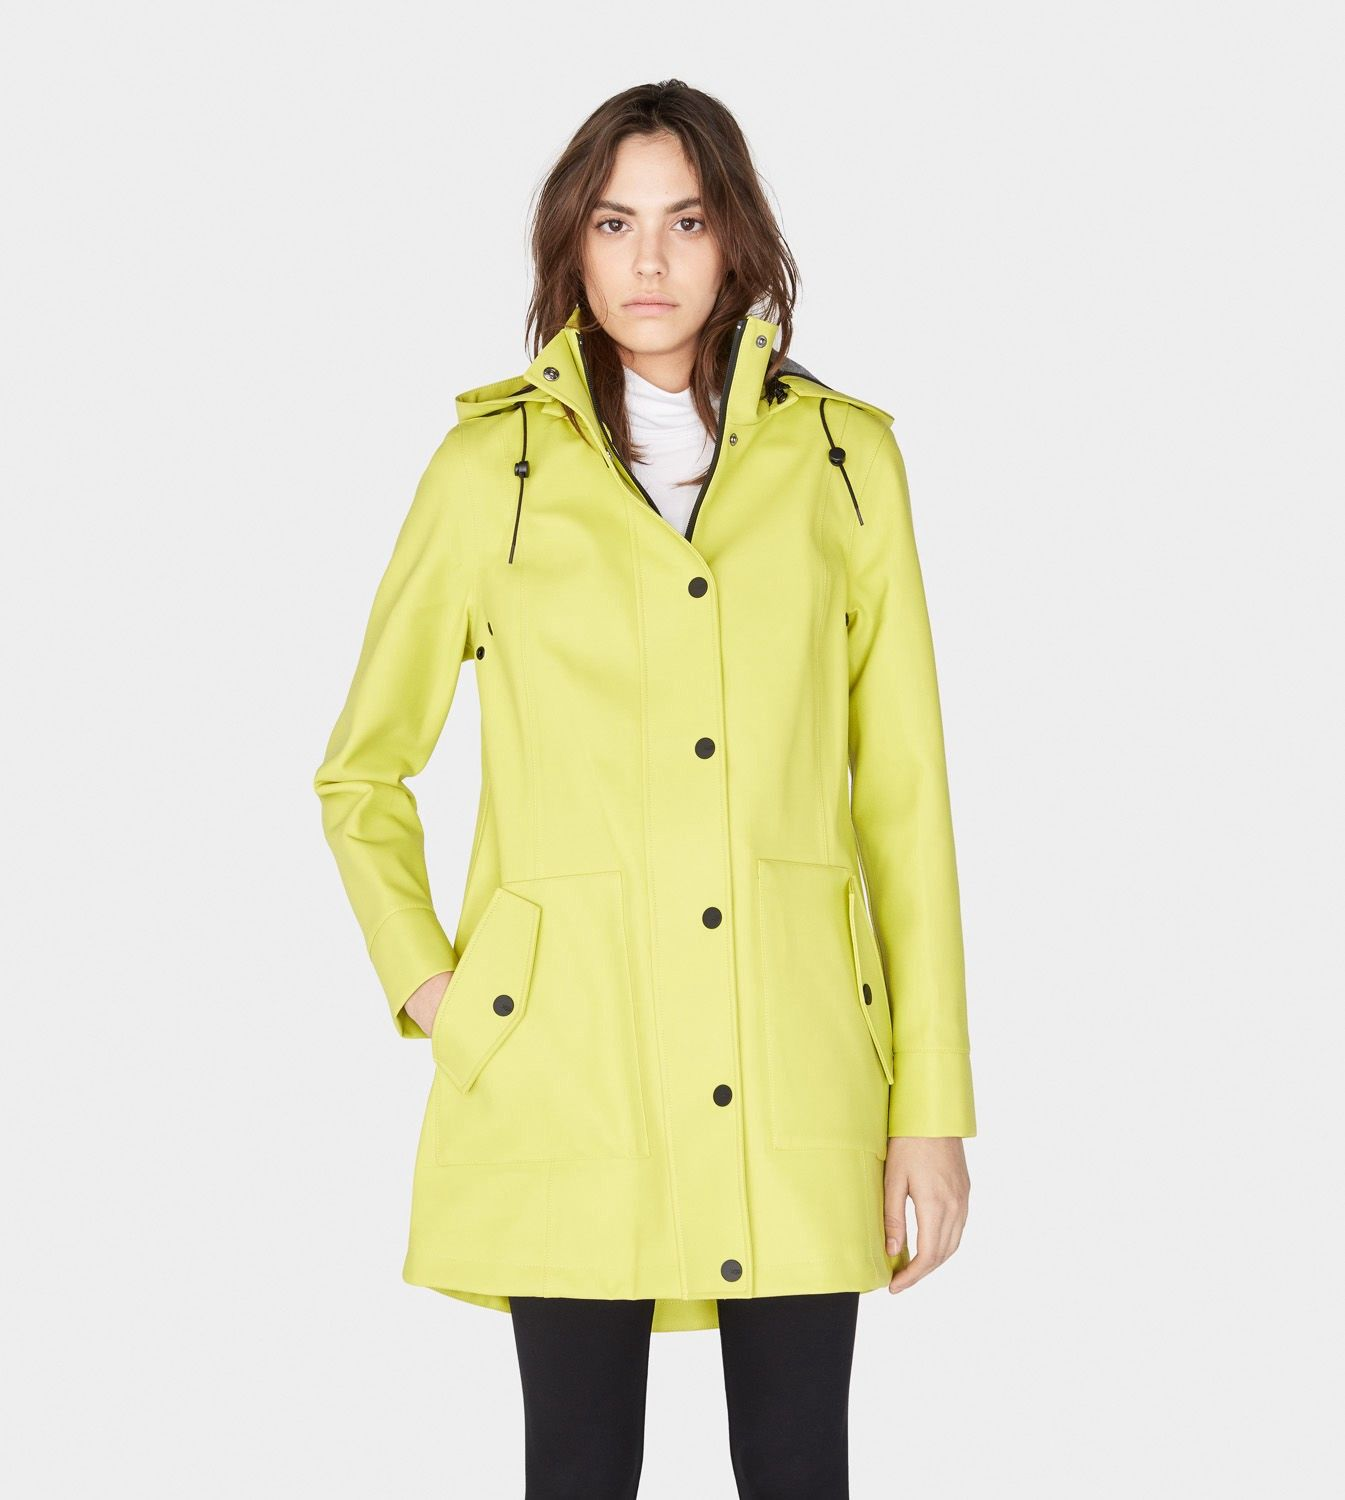 e9f20f1c471e UGG WEATHER-READY RAIN JACKET.  ugg  cloth